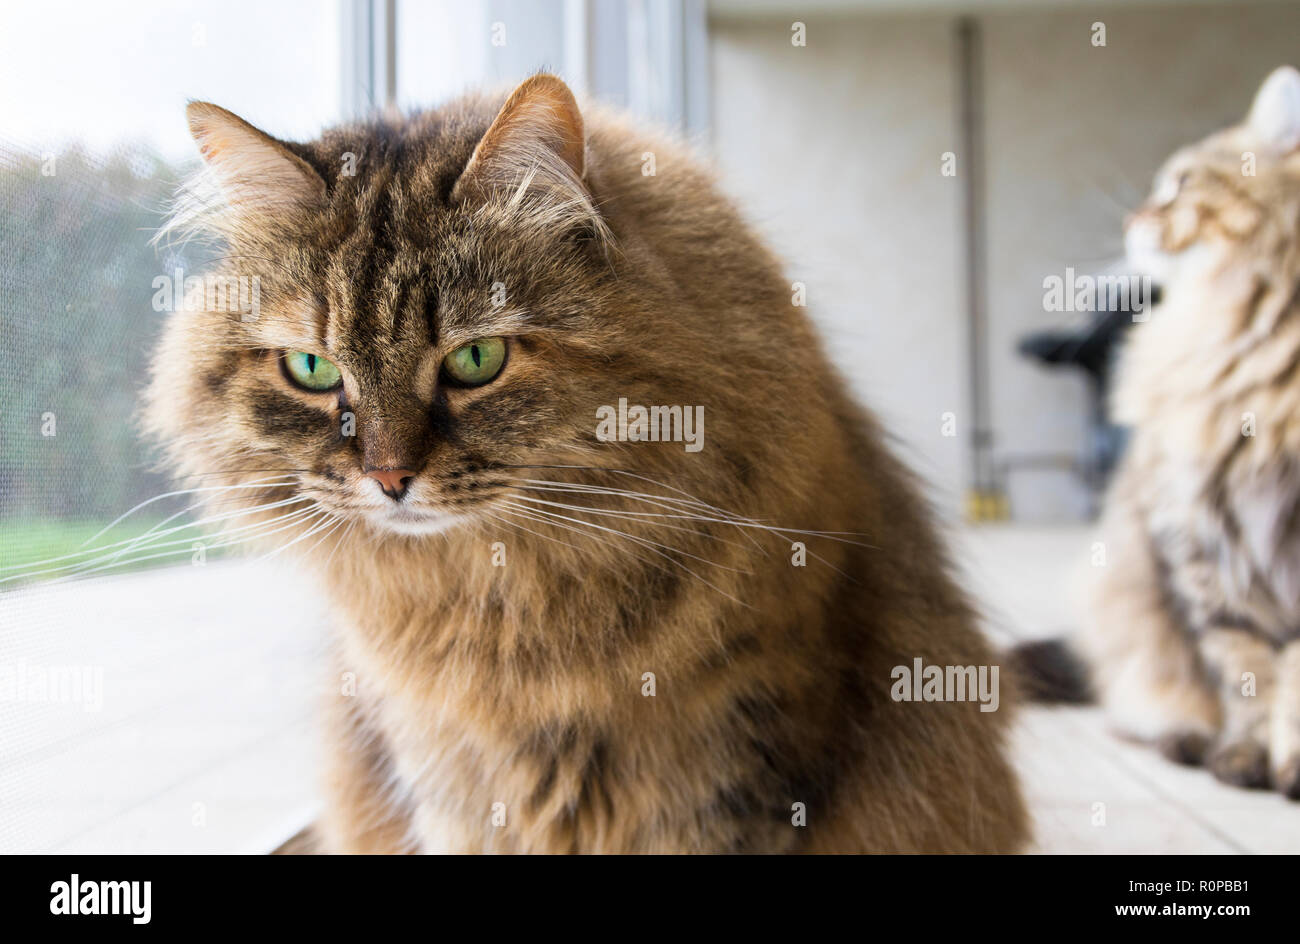 Funny cat at the window, curious pet Stock Photo